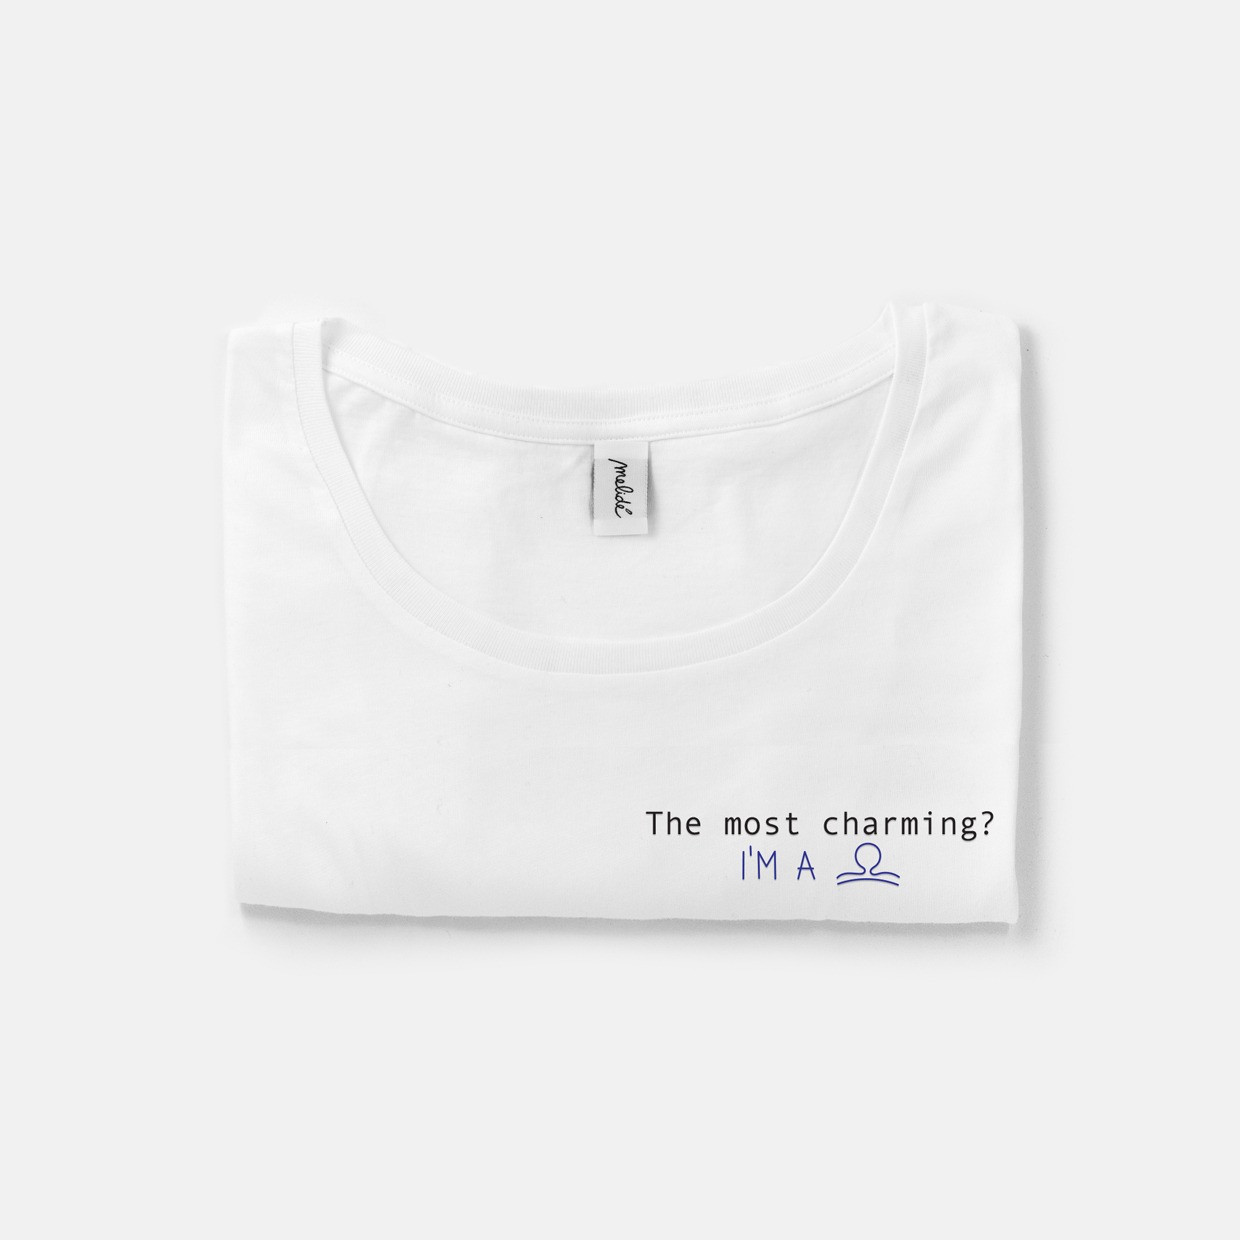 The MOST CHARMING? LIBRA wide neck tee